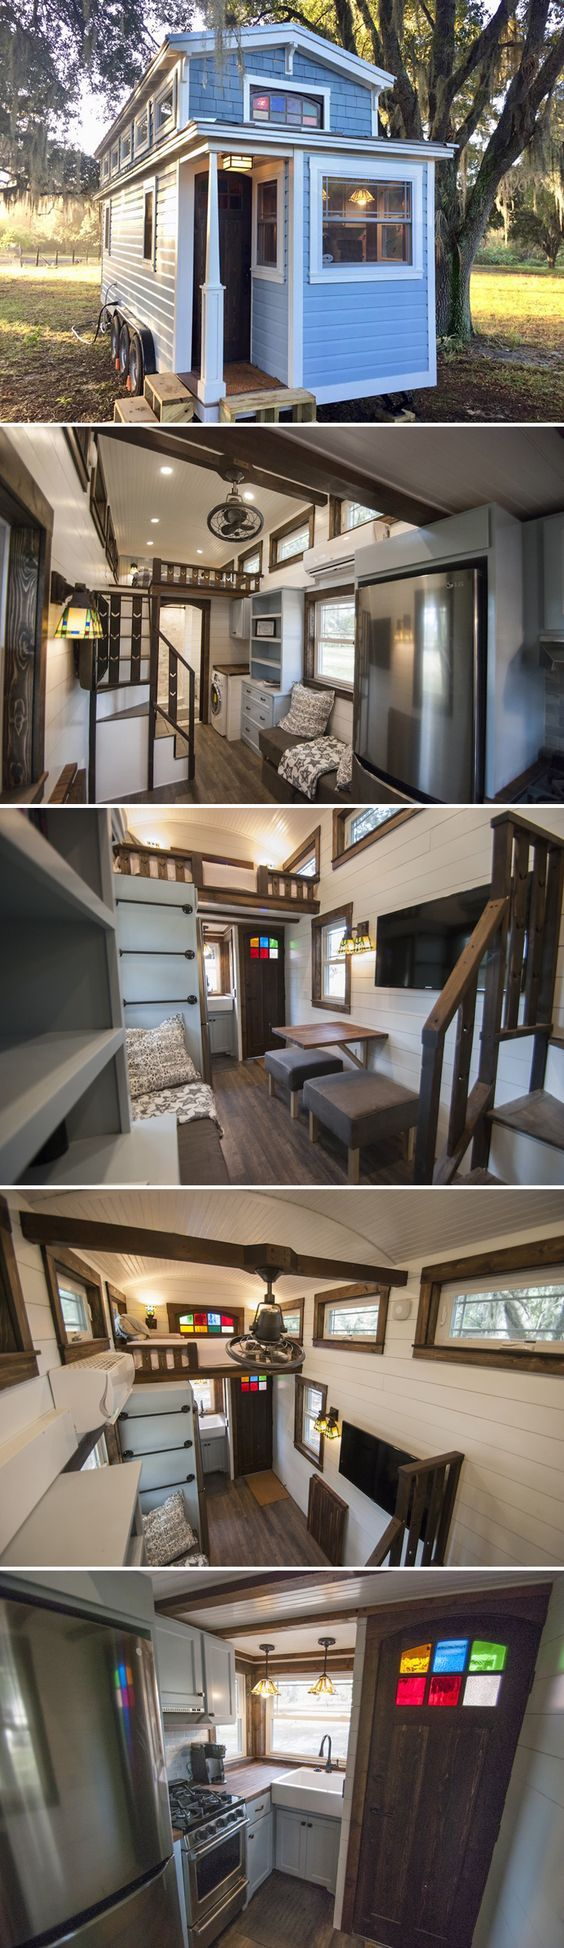 best housestiny images on pinterest home ideas cool ideas